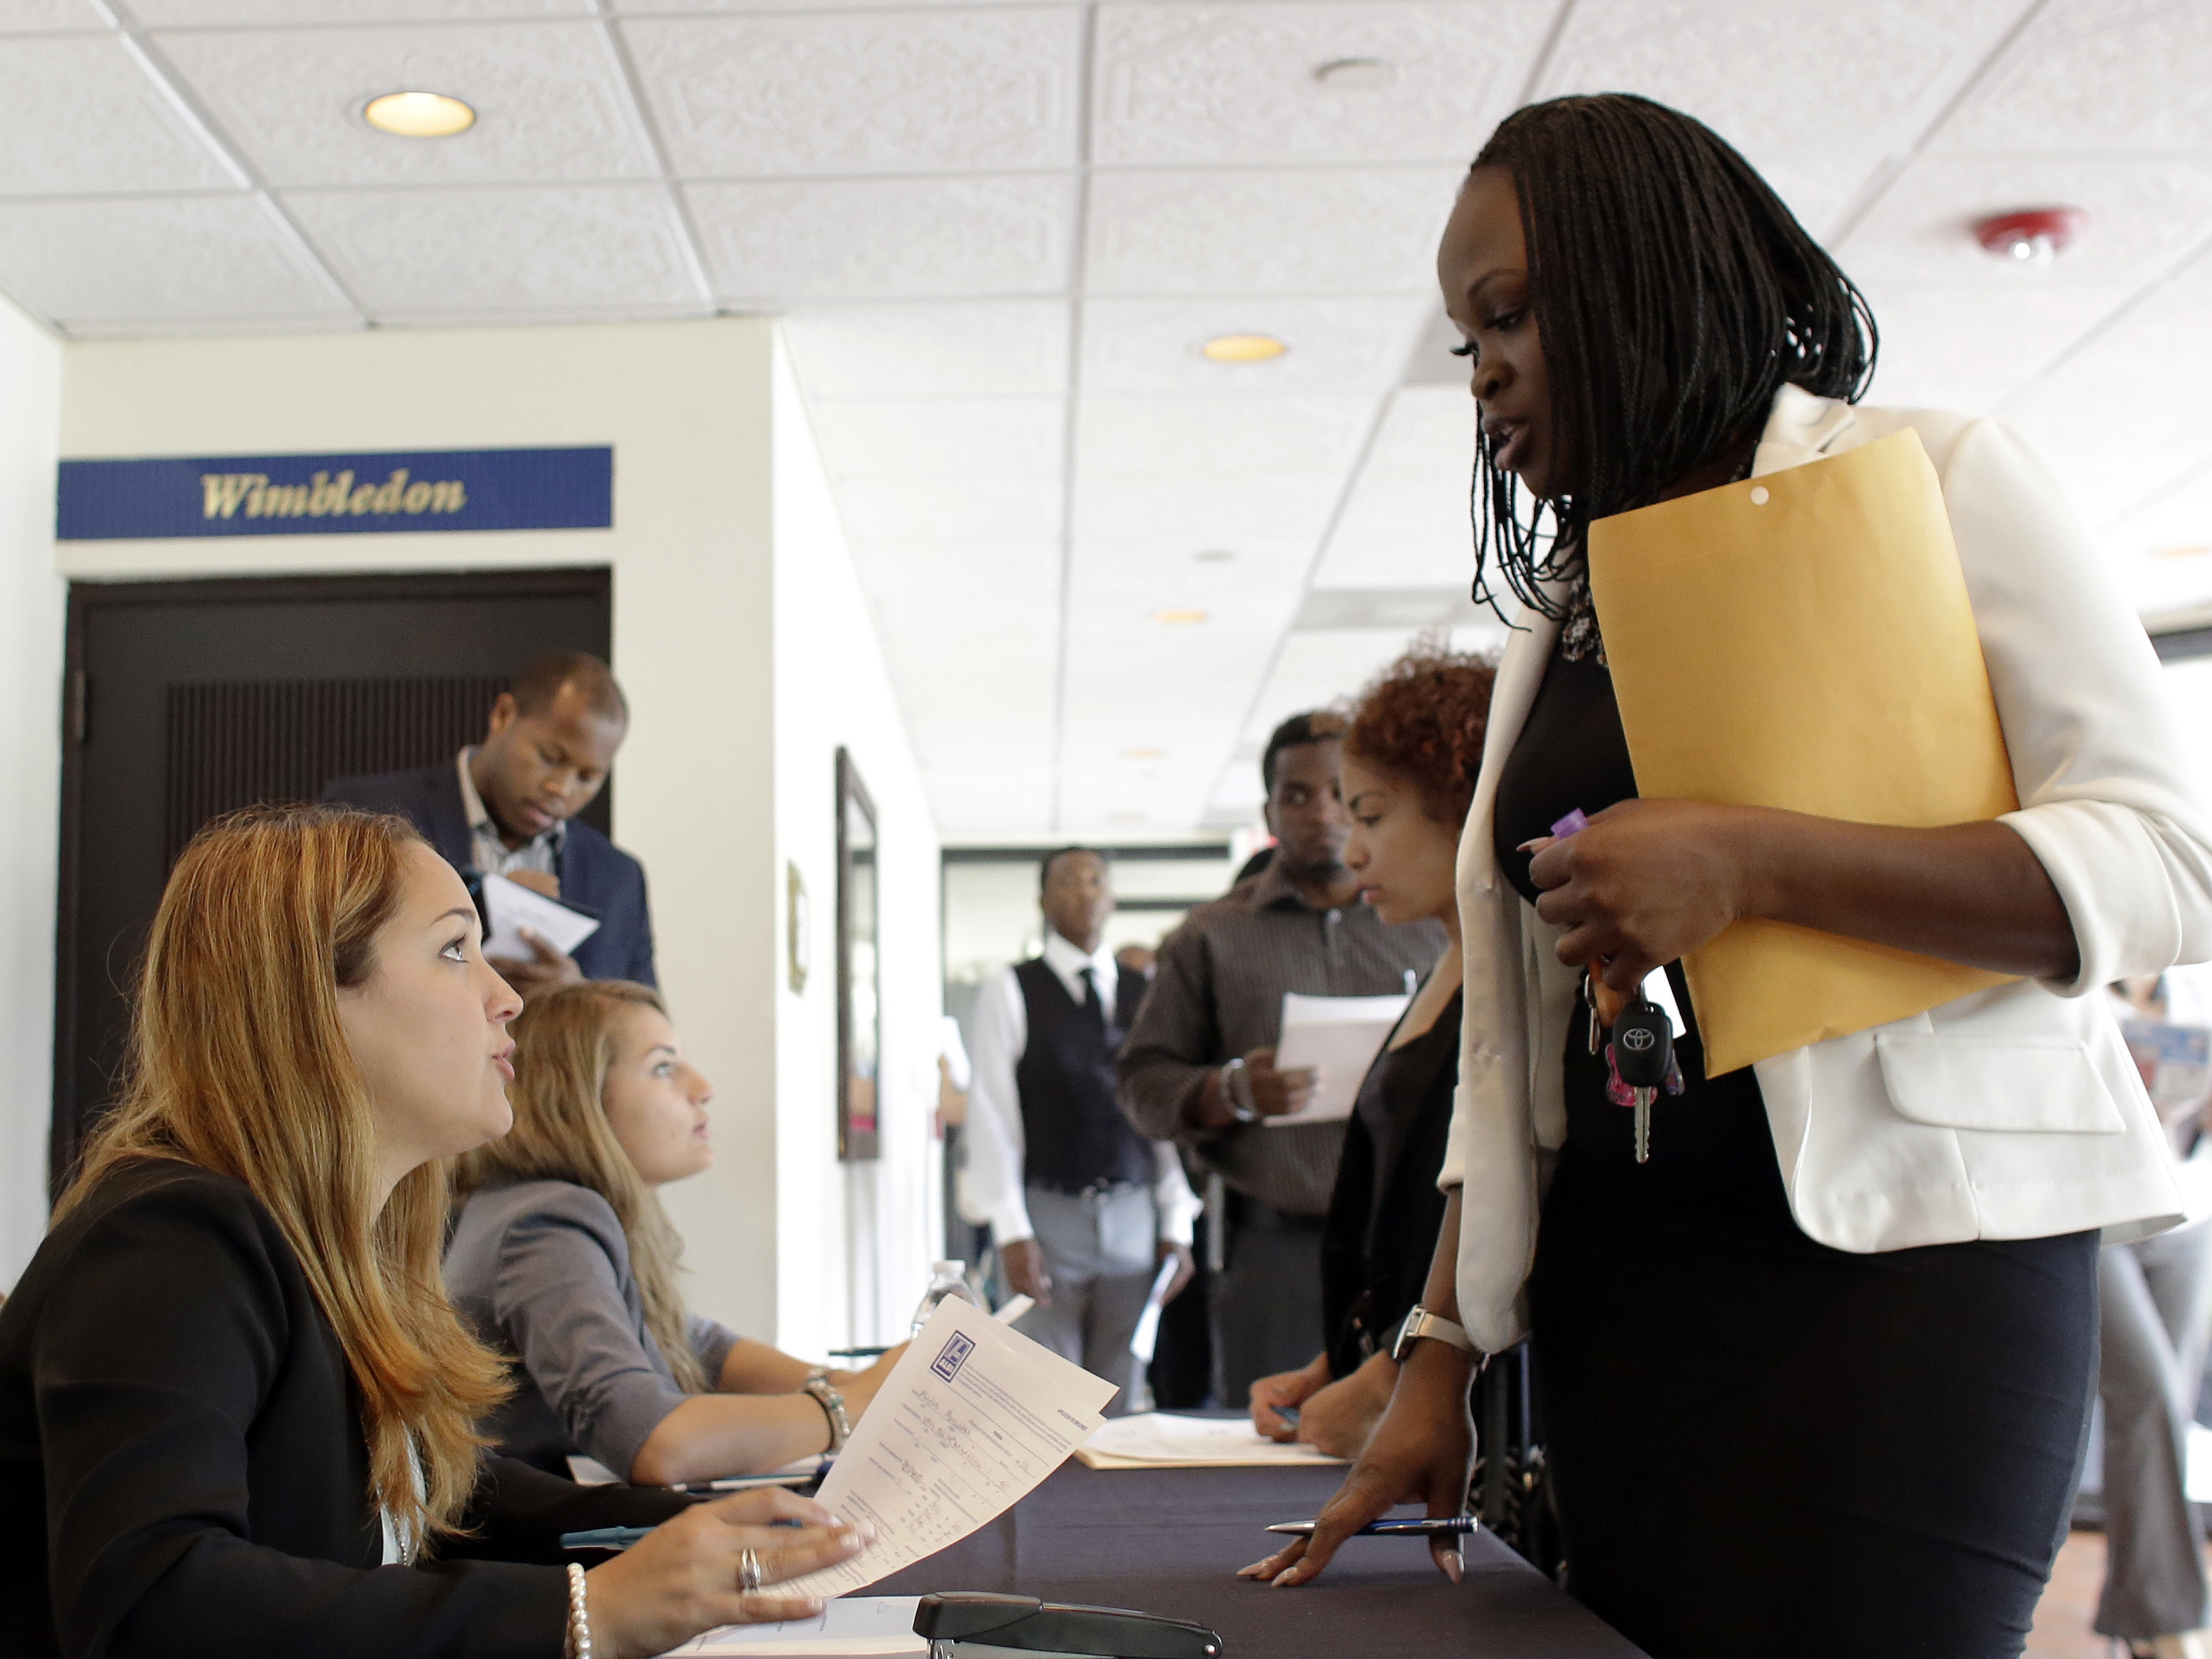 Claudia Caballero, a district manager for Aldi, talks with applicant Manoushka Metellus (right) at a job fair in Florida earlier this month. With a low unemployment rate, consumers are still spending but business inventories fell during the second quarter.